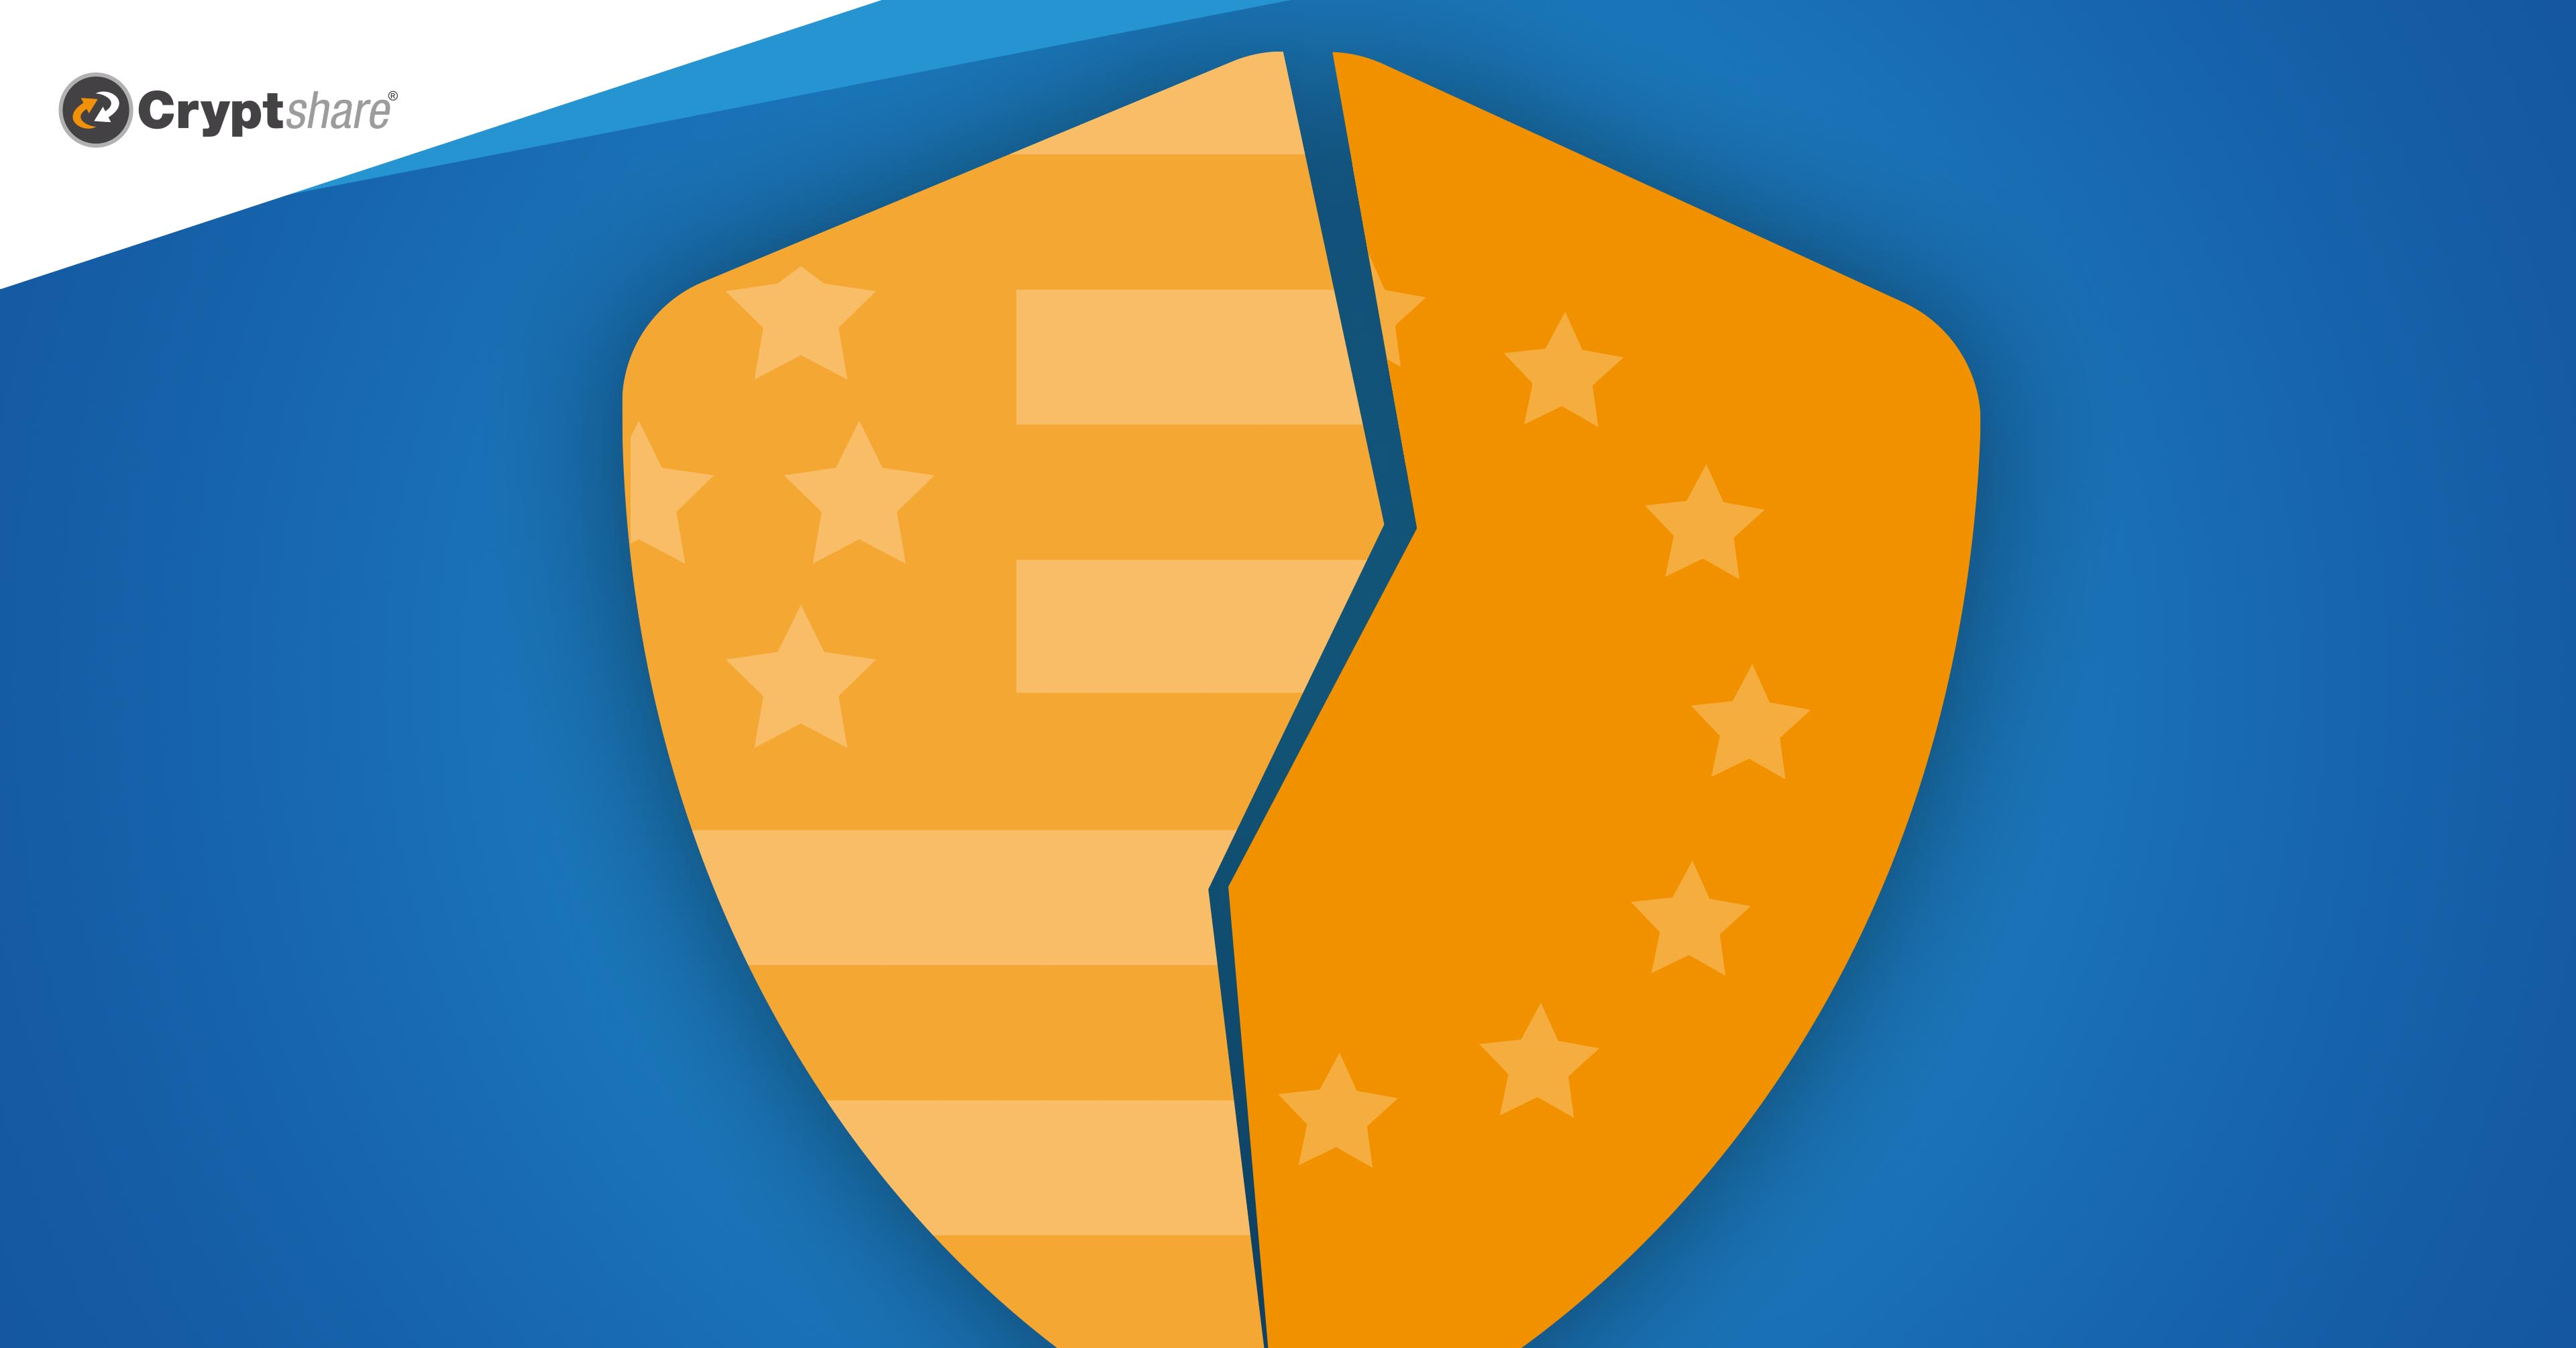 Privacy Shield overturned by European Court of Justice